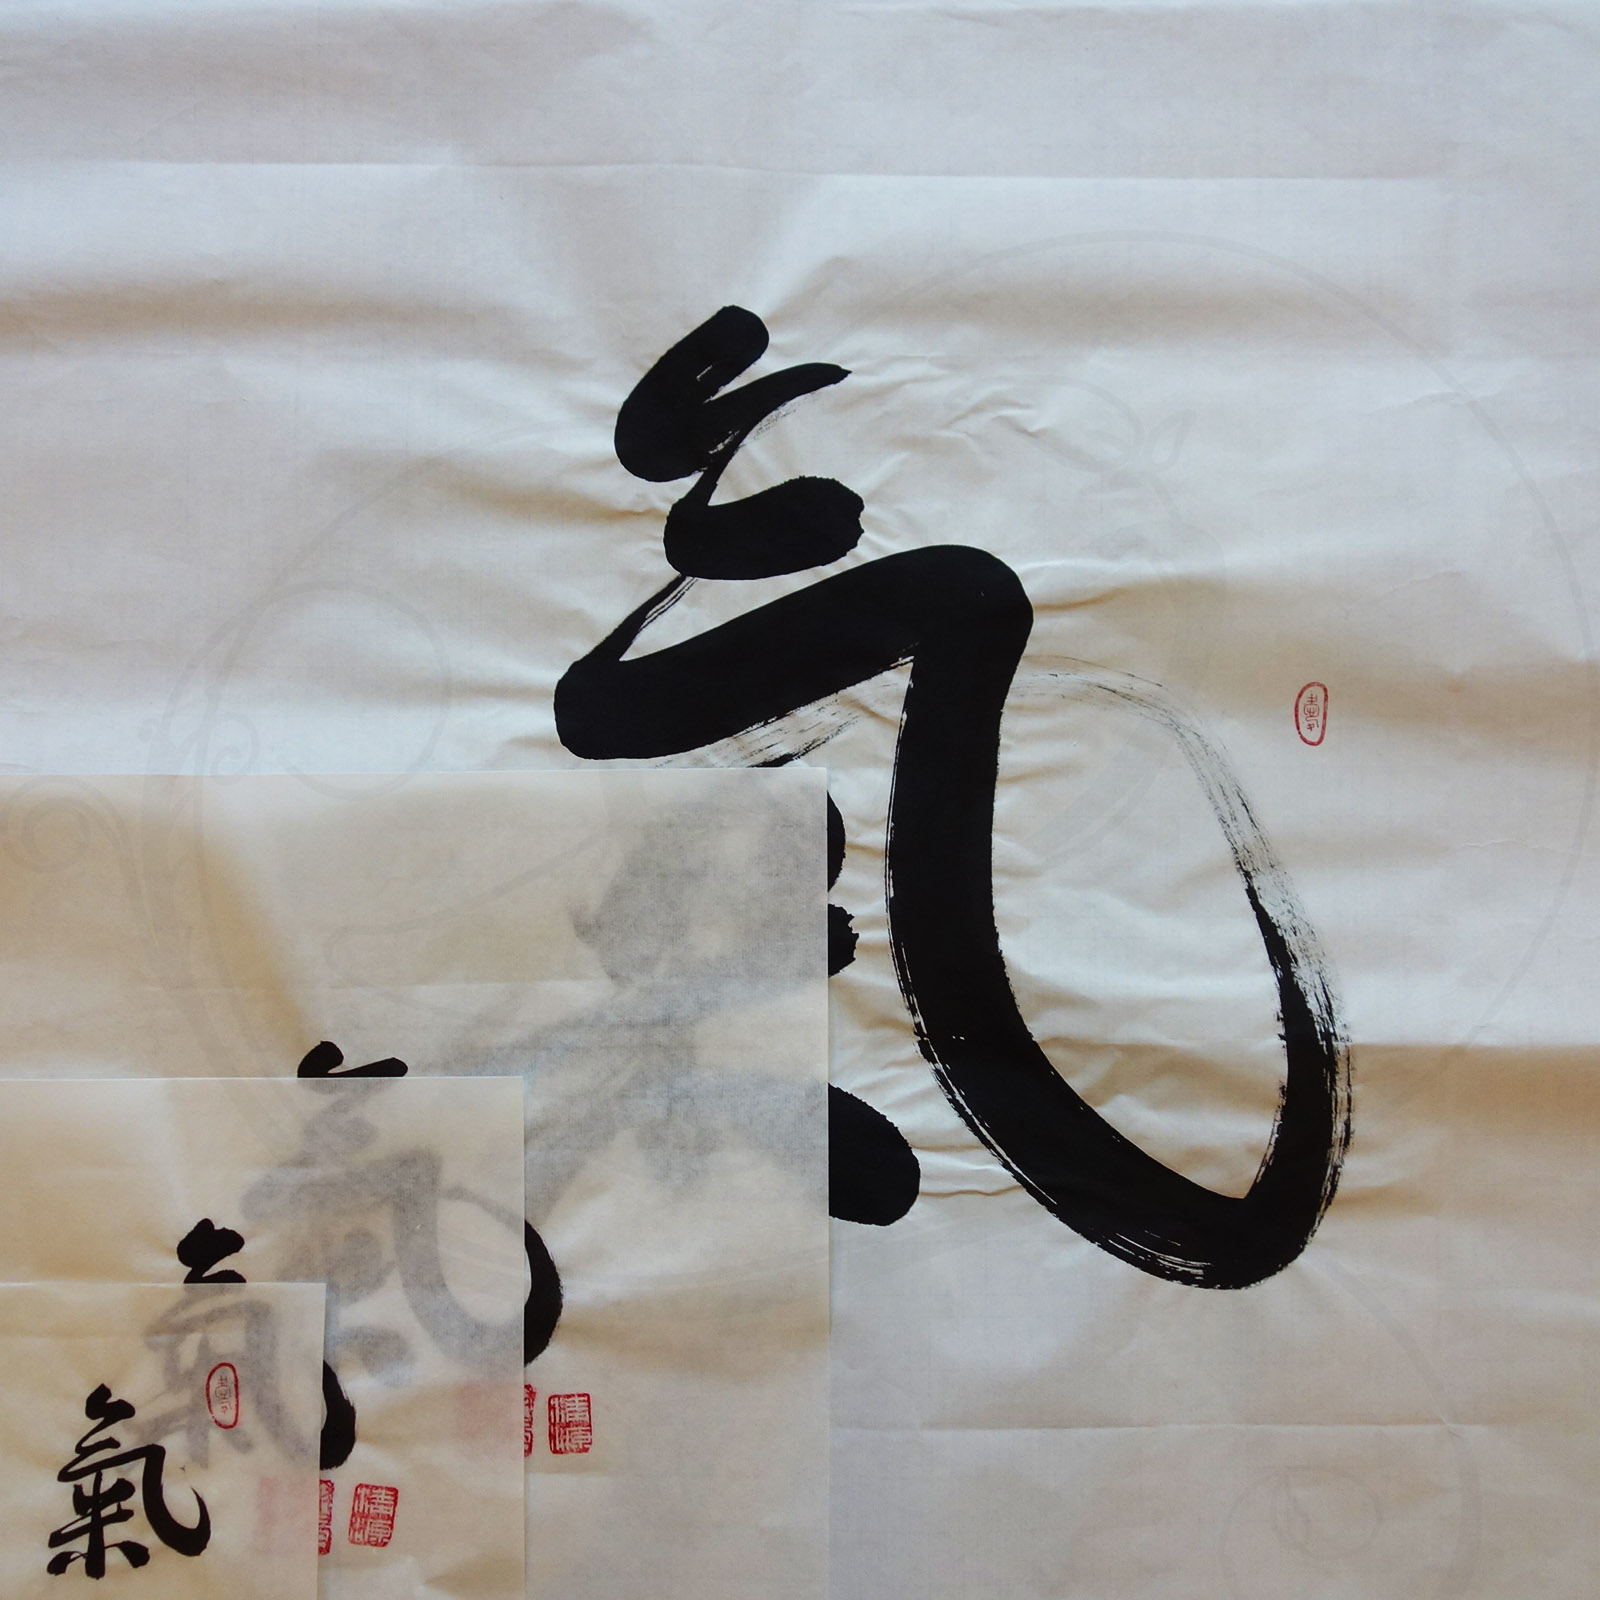 calligraphie-chinoise-vertus-xing-shu-chi-tous-formats